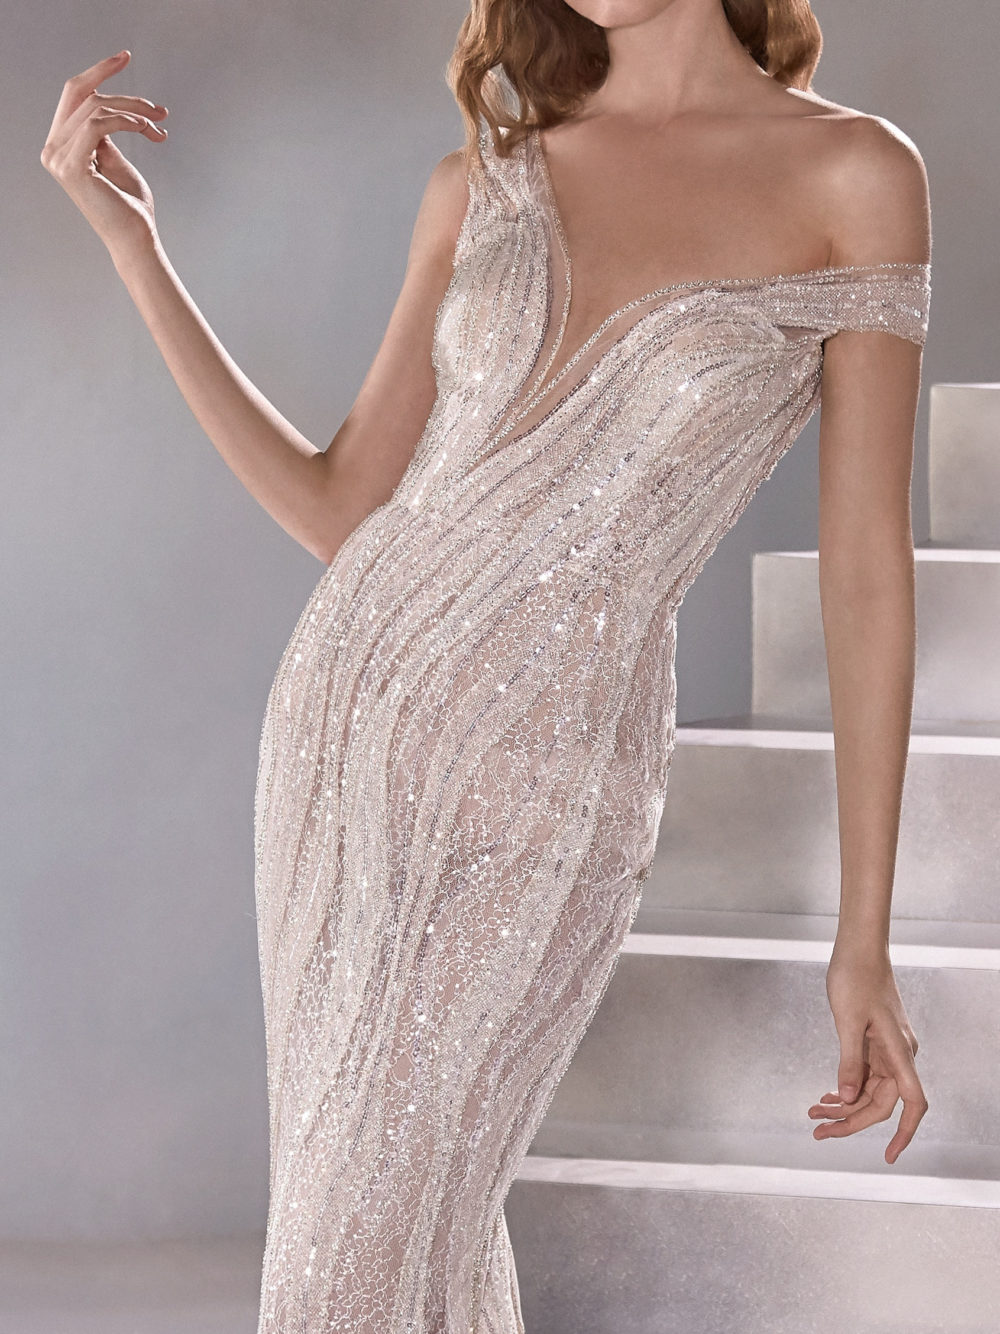 Pronovias Odyssey Wedding Gown Dress 2020 Atelier Collection front